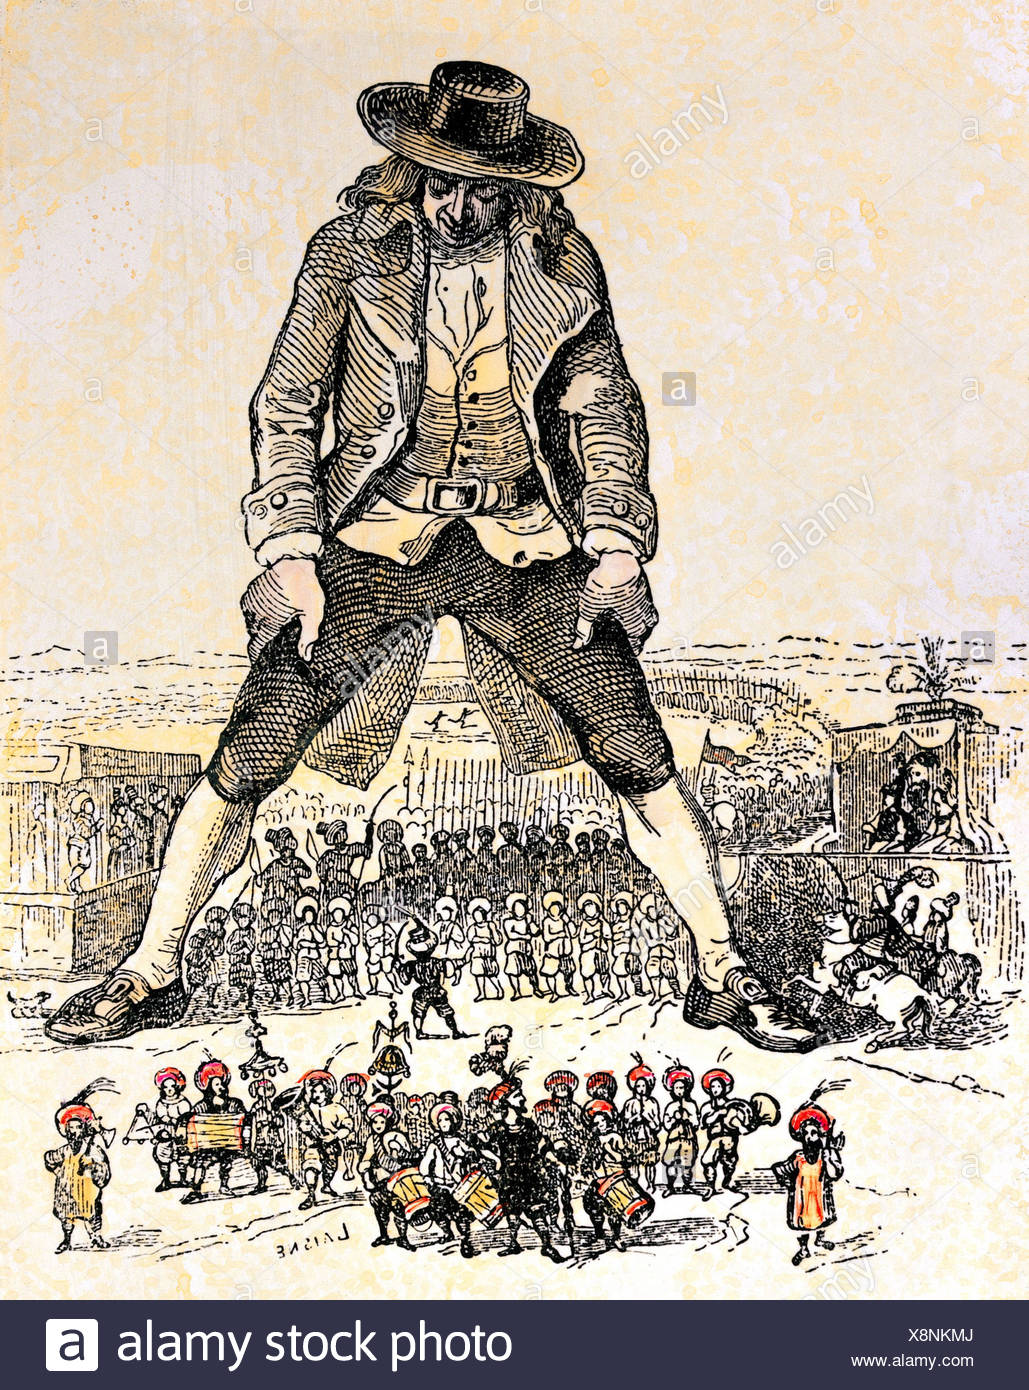 term paper on gullivers travels jonathan swifts A 5 page paper which examines the use of satire in jonathan swift's novel gulliver's travels bibliography lists 4 sources fill out the form below and receive your selected paper now.